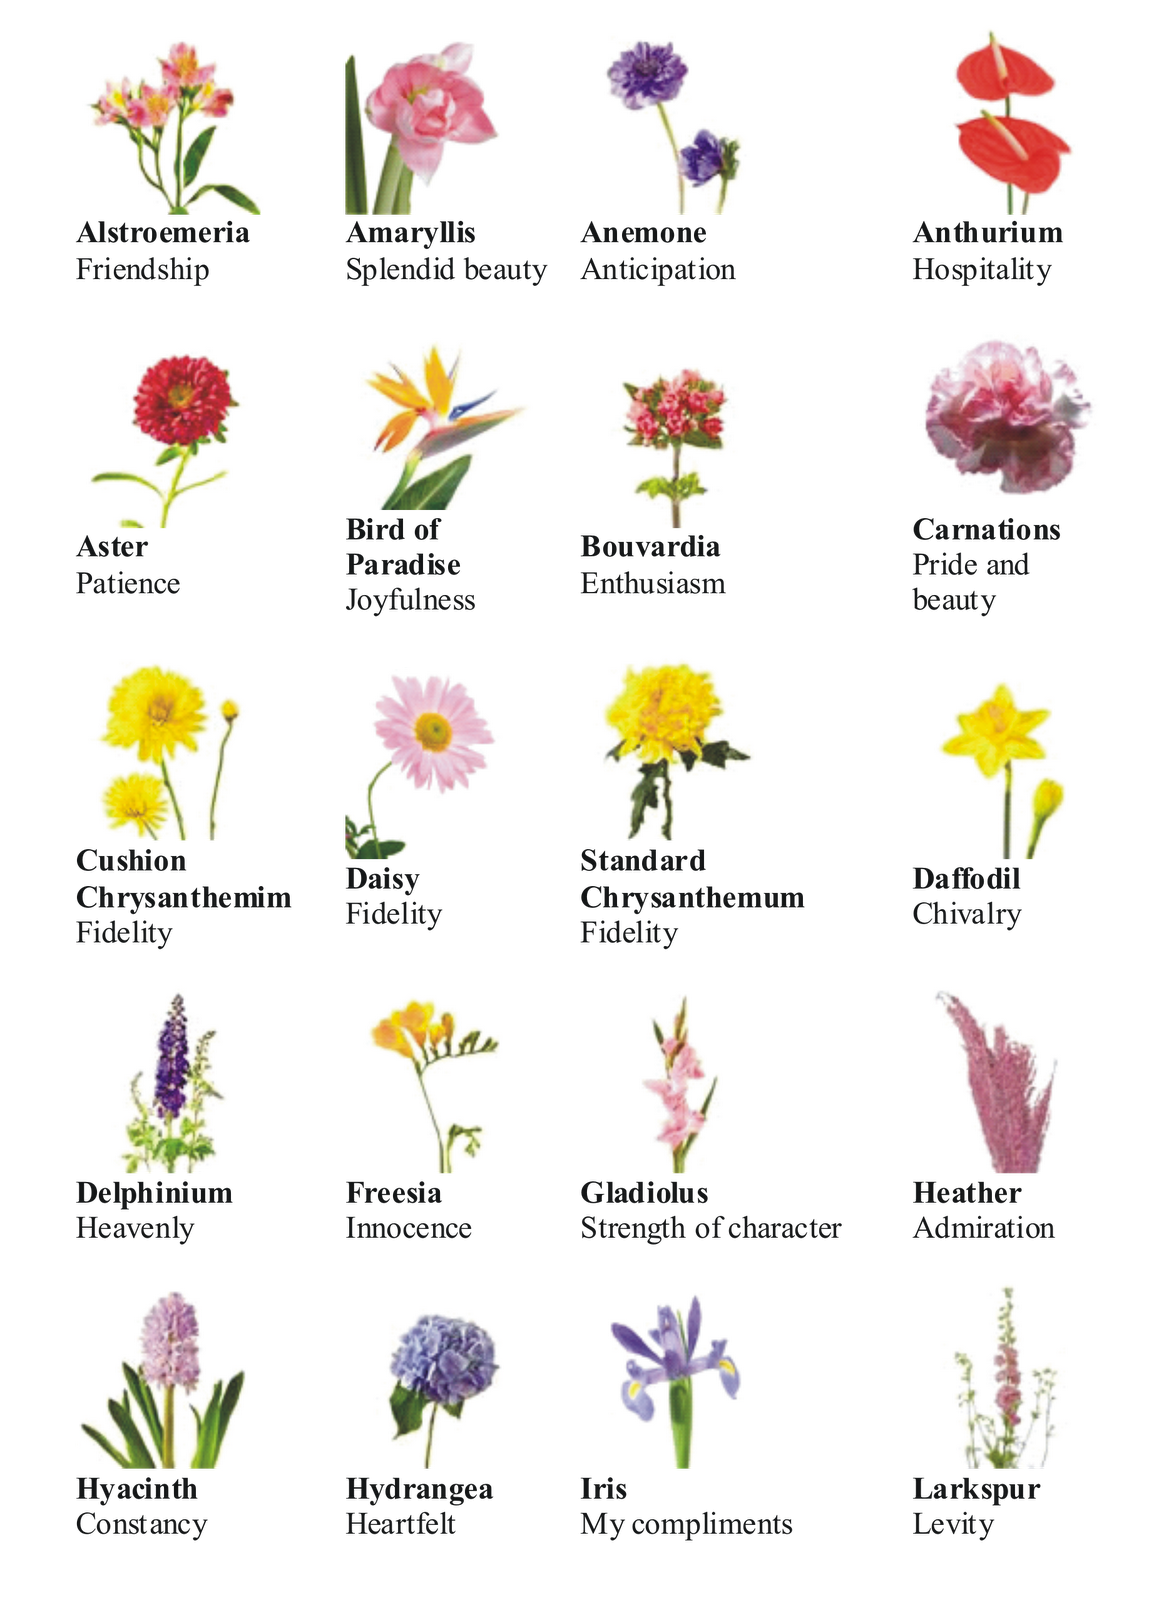 flower chart know what your wedding flowers mean wedding pinterest noms de fleurs fleur. Black Bedroom Furniture Sets. Home Design Ideas